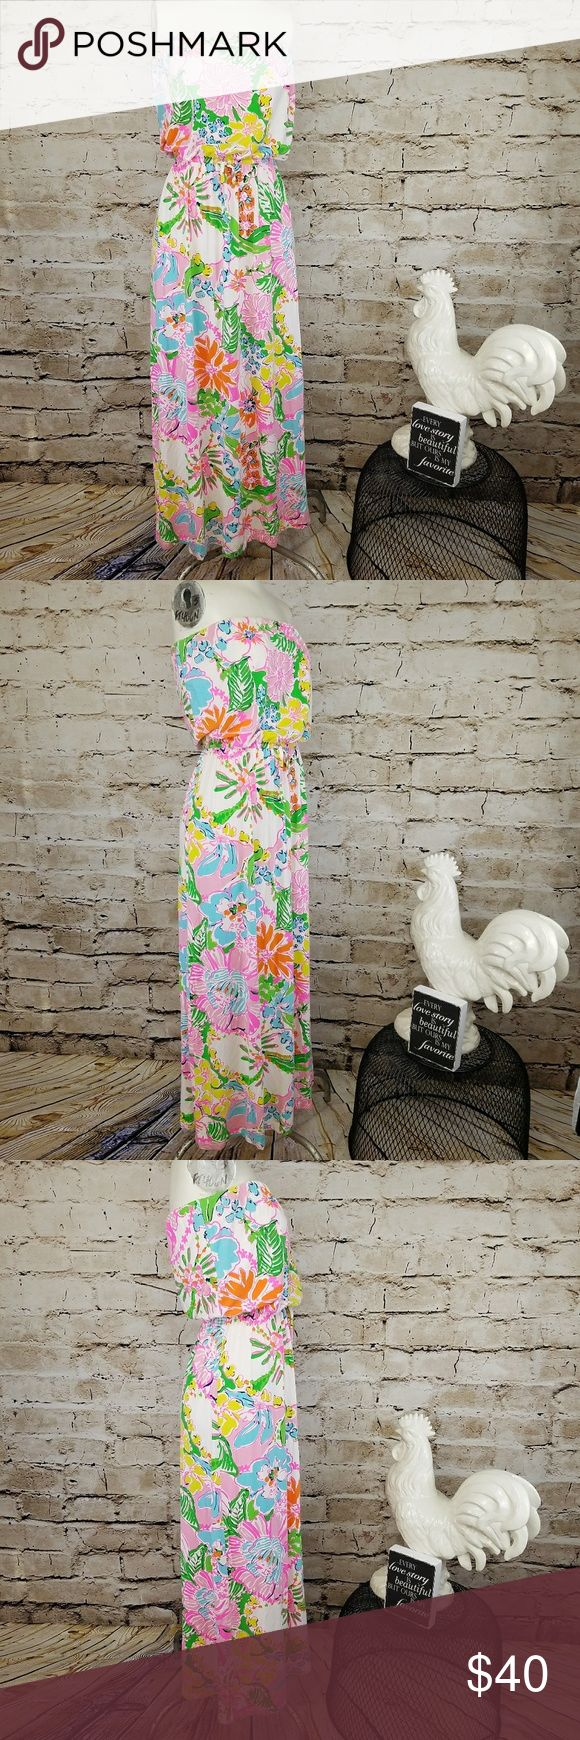 Lilly Pulitzer for Target Maxi Dress Nosie Posey S Lilly Pulitzer for Target - Maxi Dress Nosie Posey -  Sz S  Multi-Color Tropical Colors Maxi Dress Colors- White, Pink, Green, Orange, & Blue Floral Print Stretch & Soft Built in Elastic Band for Bra Support Elastic Band Waist - Empire Waist - Drawstring Waist Strapless  Great for casual wear, girls night, brunch, date night, festival, running around town & etc!  EUC - Excellent Used Condition 95% Rayon & 5% Spandex  Measurements: Armpit to…